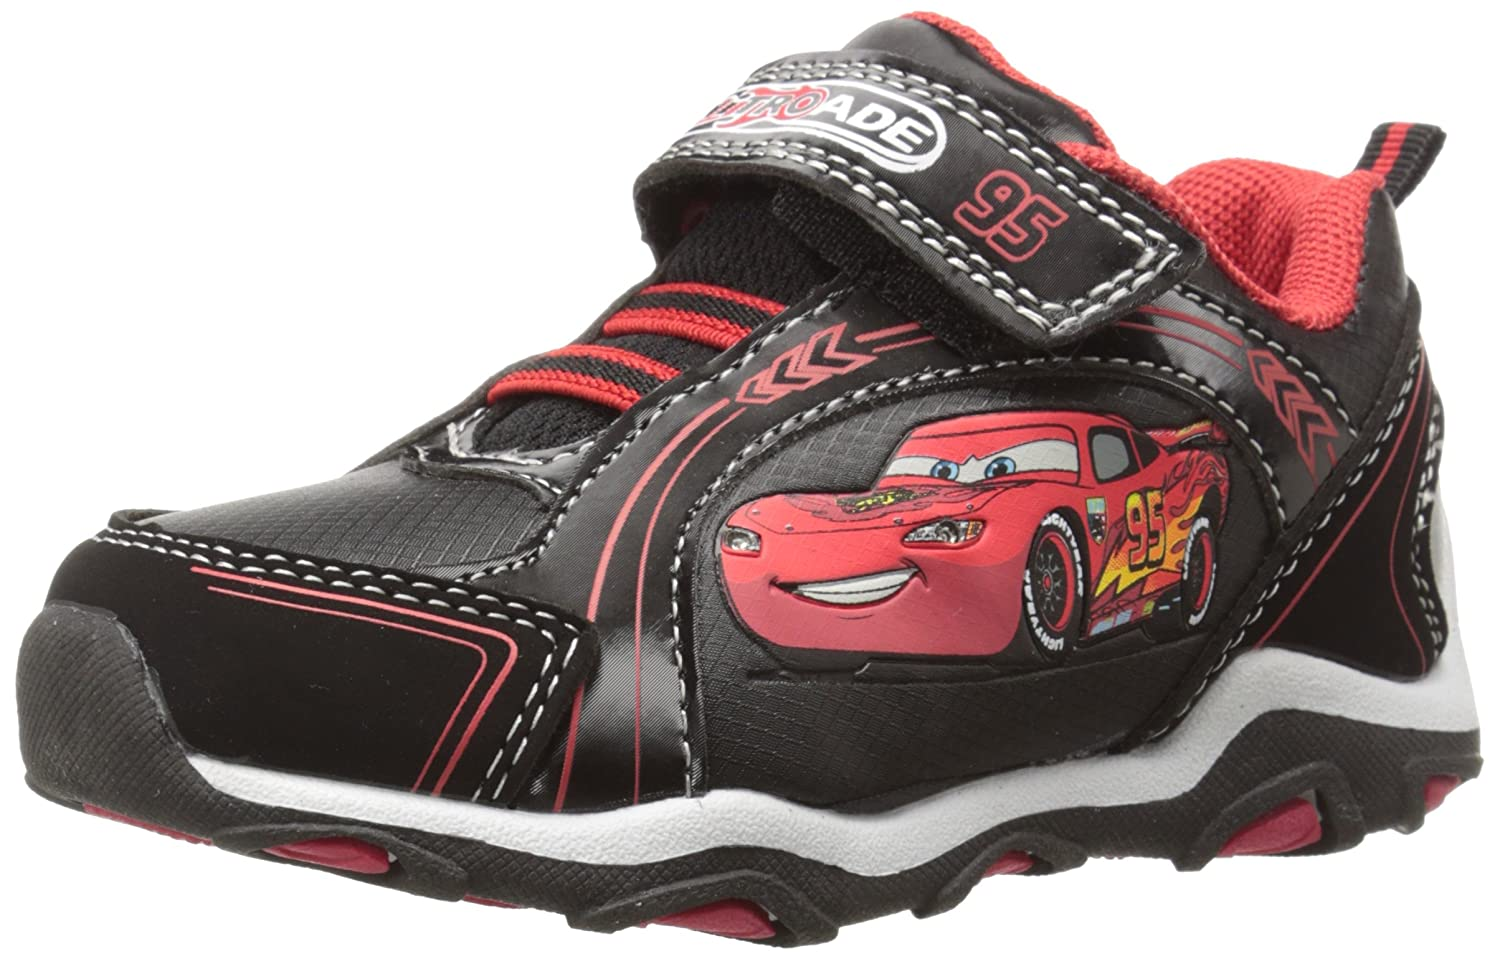 12f9b0bb7c Disney Cars Lightning McQueen Sneaker, Black/Red, 11 M US Little Kid: Buy  Online at Low Prices in India - Amazon.in